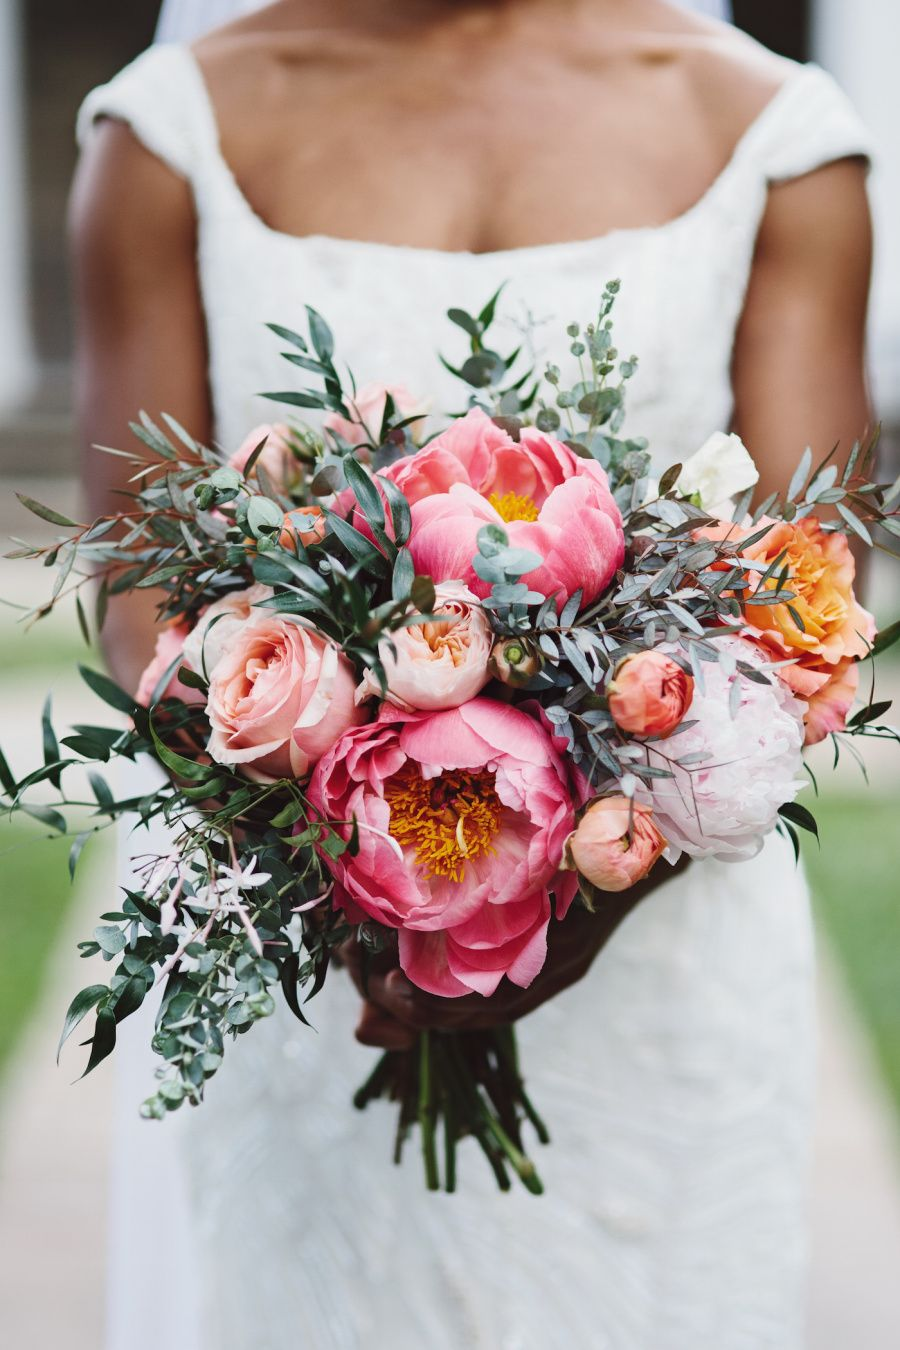 20 Amazing Wedding Bouquets Bouquets Pinterest Flower Bouquets